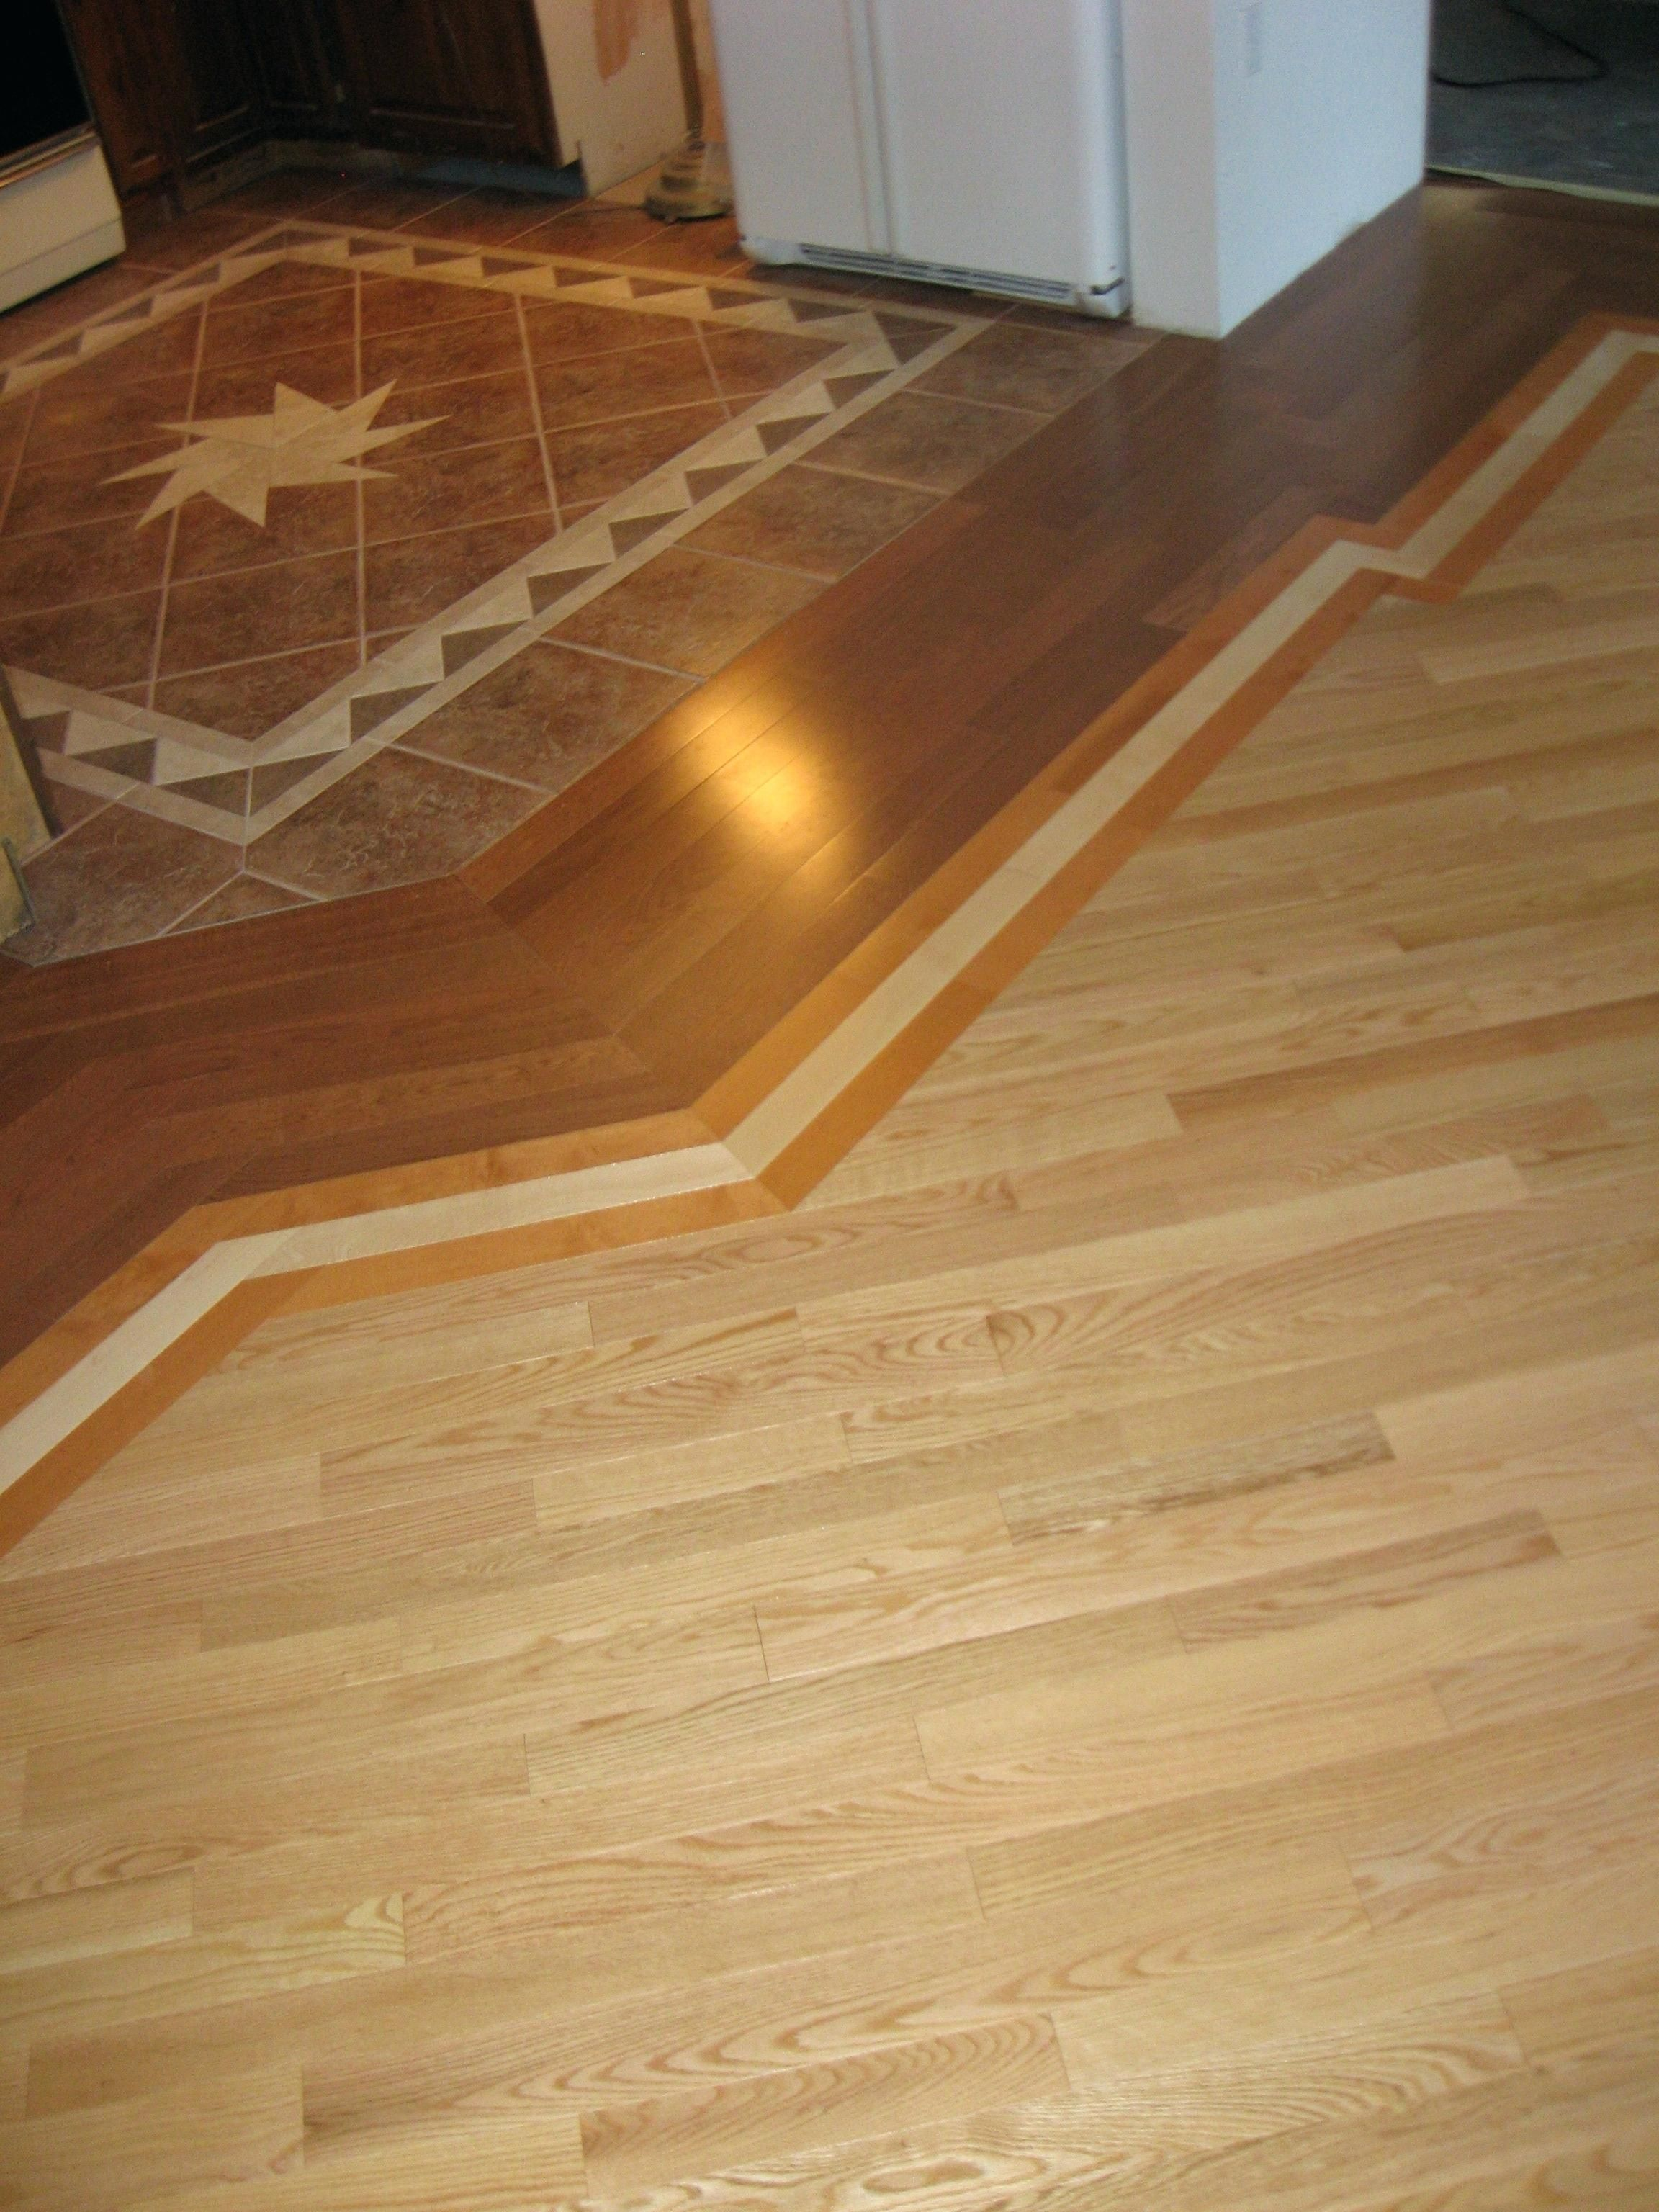 Wood Floor To Tile Transition Strips